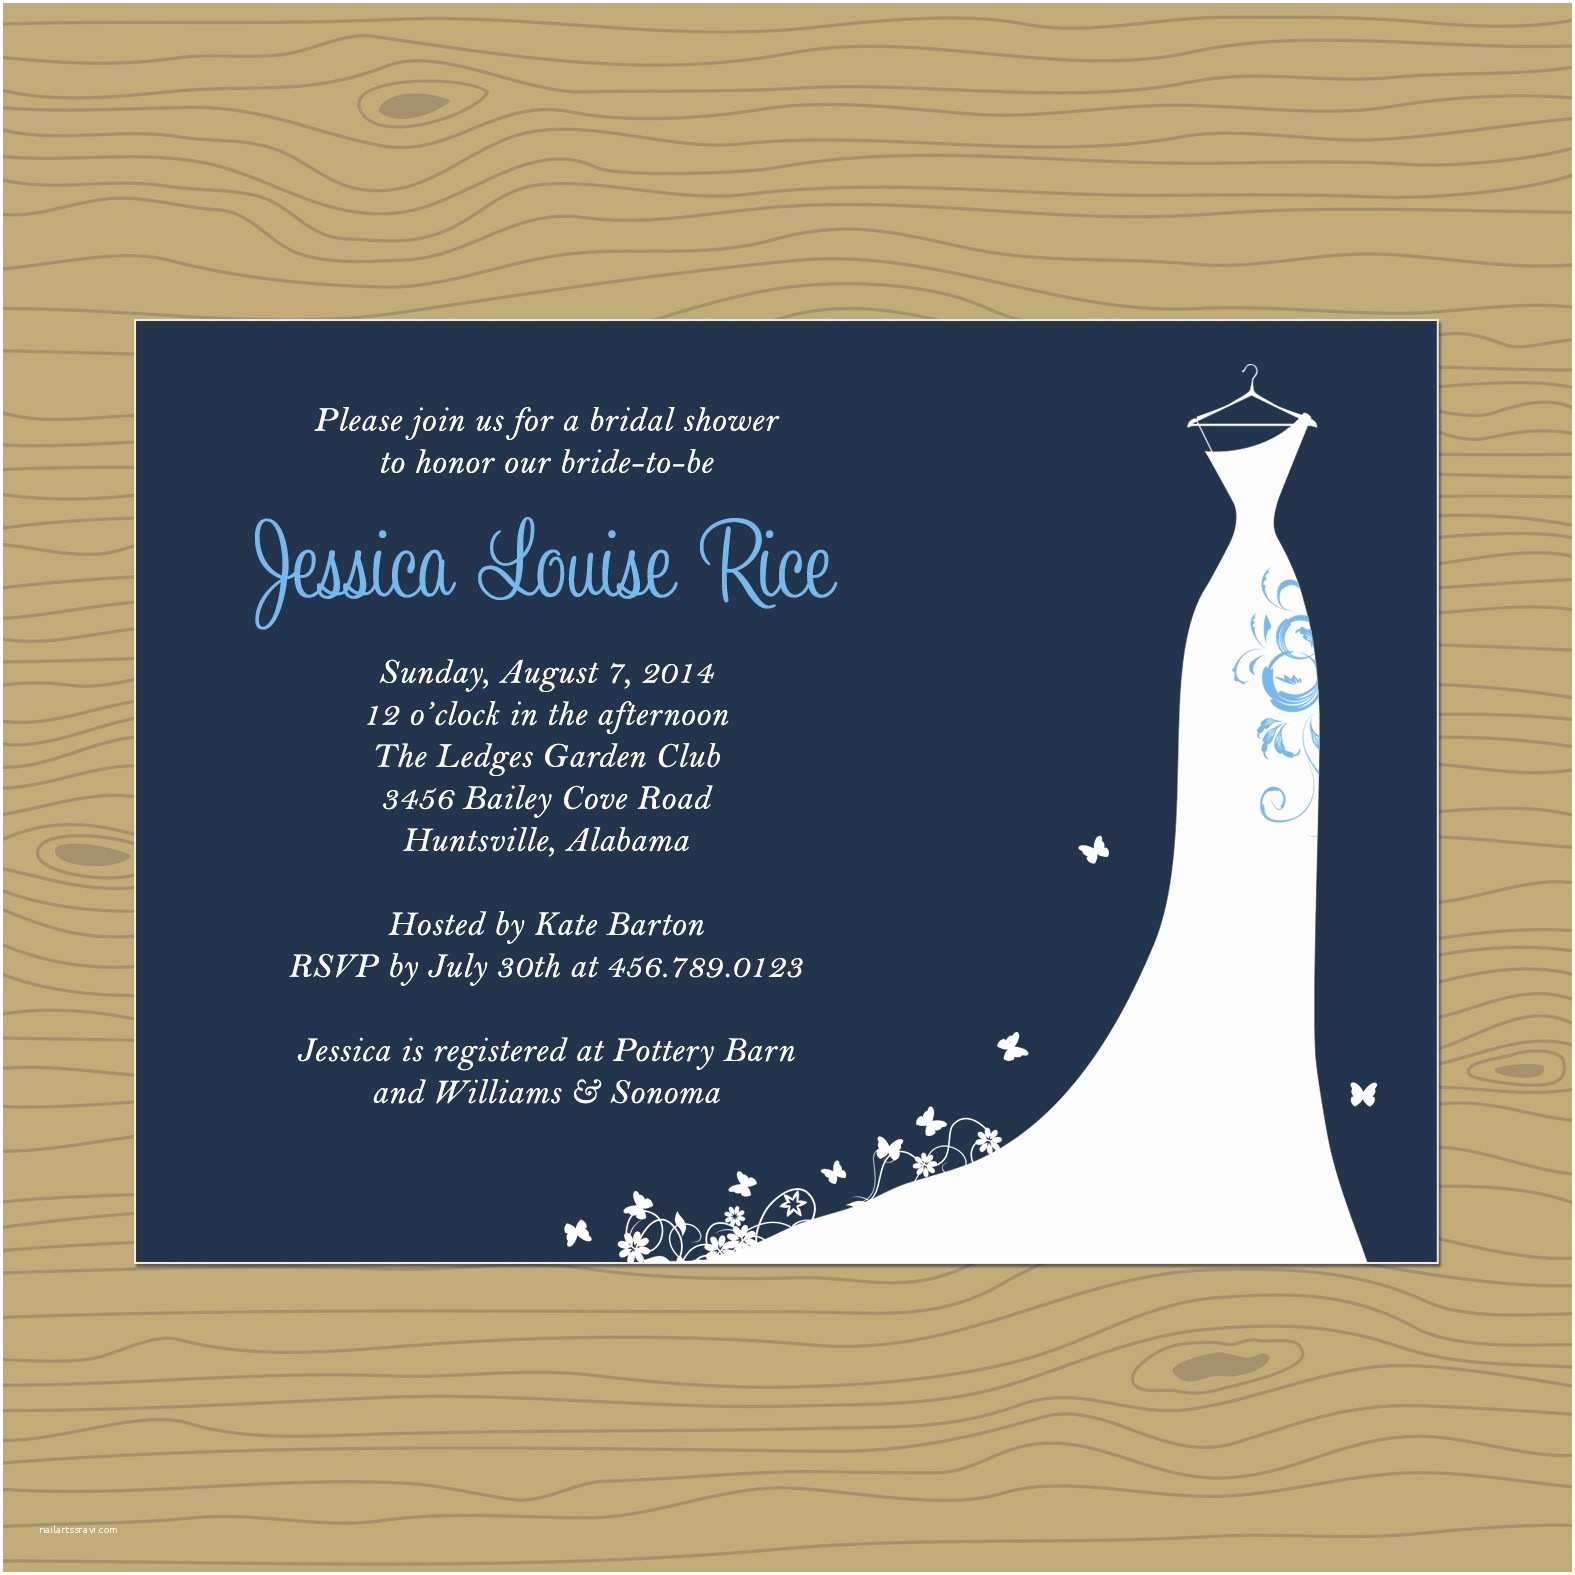 Online Bridal Shower Invitations Card Template Blank Invitation Templates Free for Word